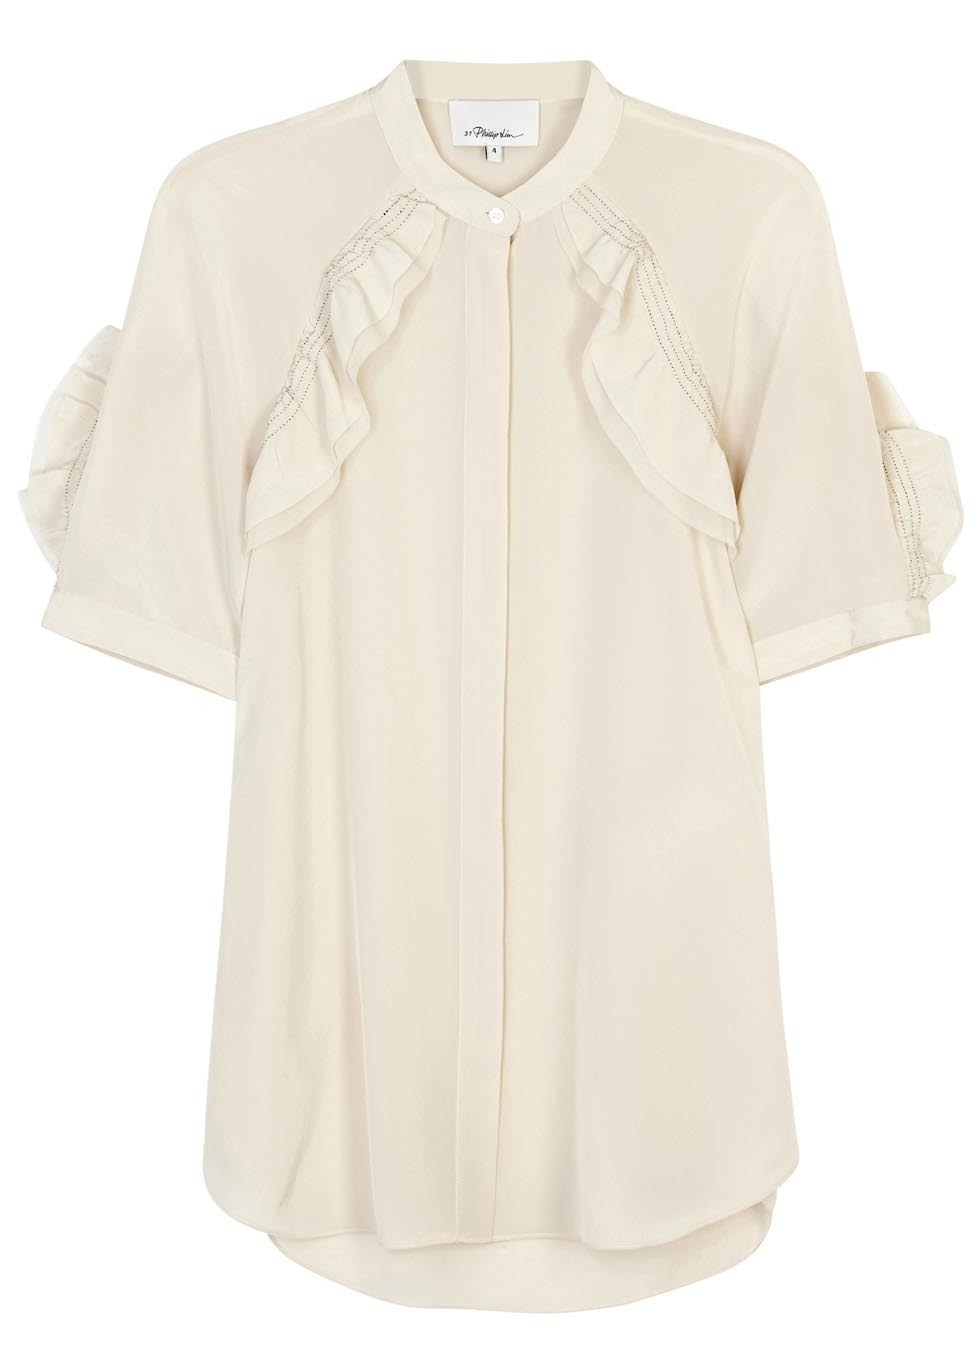 Champagne Ruffled Silk Blouse - pattern: plain; style: blouse; predominant colour: ivory/cream; length: standard; neckline: collarstand; fibres: silk - 100%; fit: body skimming; sleeve length: short sleeve; sleeve style: standard; bust detail: tiers/frills/bulky drapes/pleats; pattern type: fabric; texture group: other - light to midweight; occasions: creative work; season: s/s 2016; wardrobe: highlight